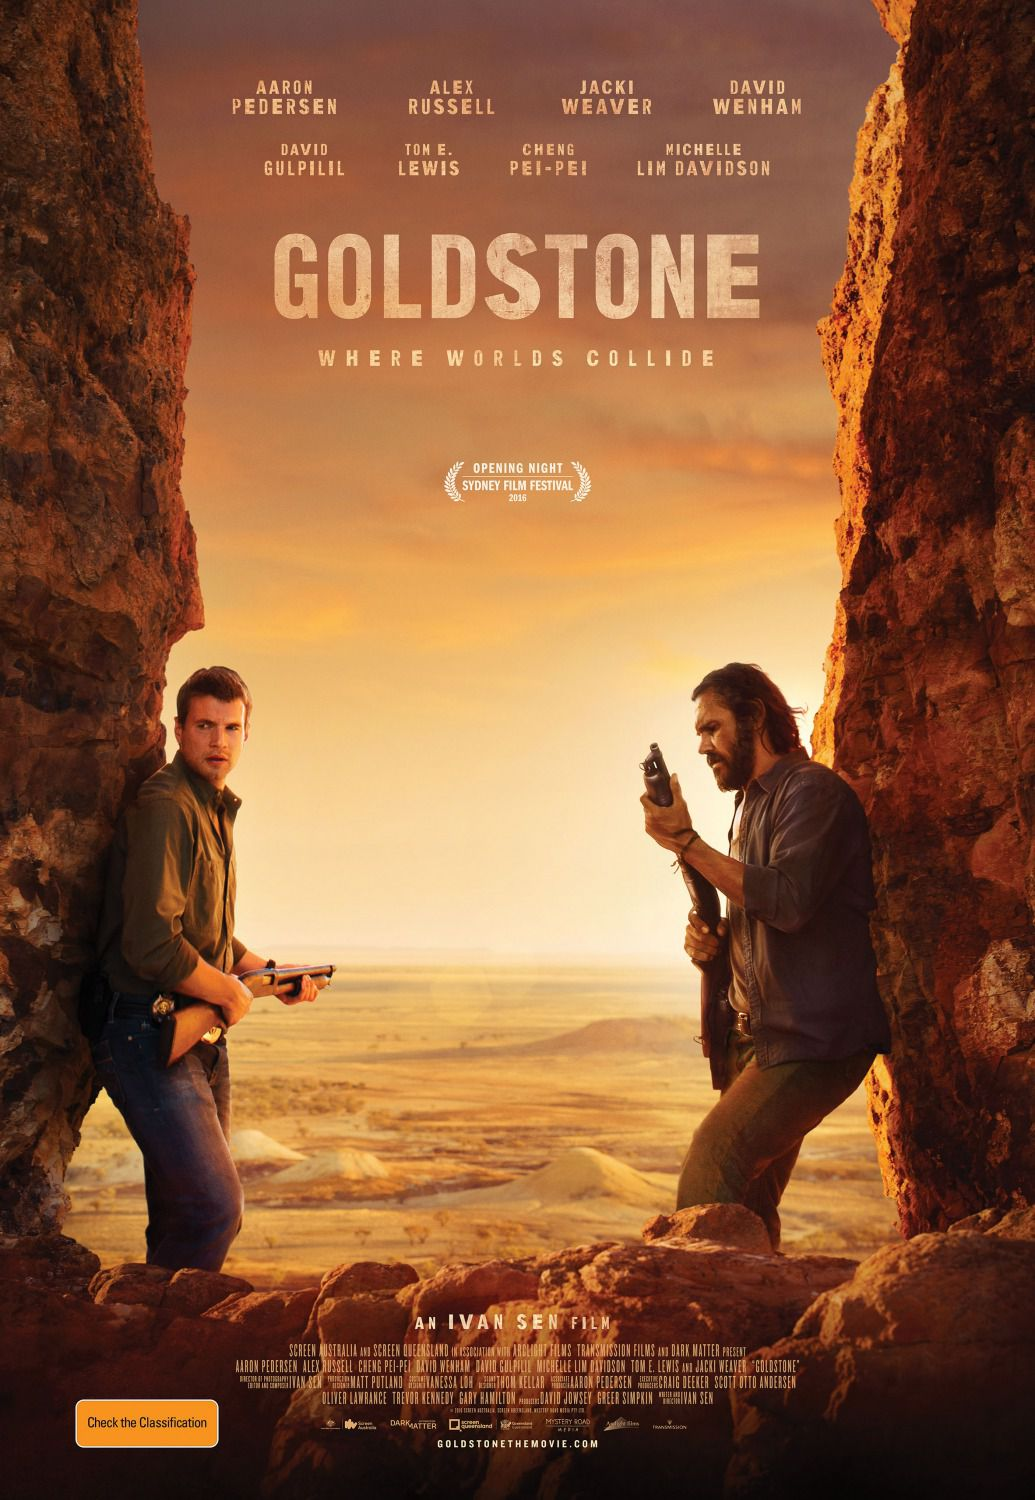 Goldstone film poster